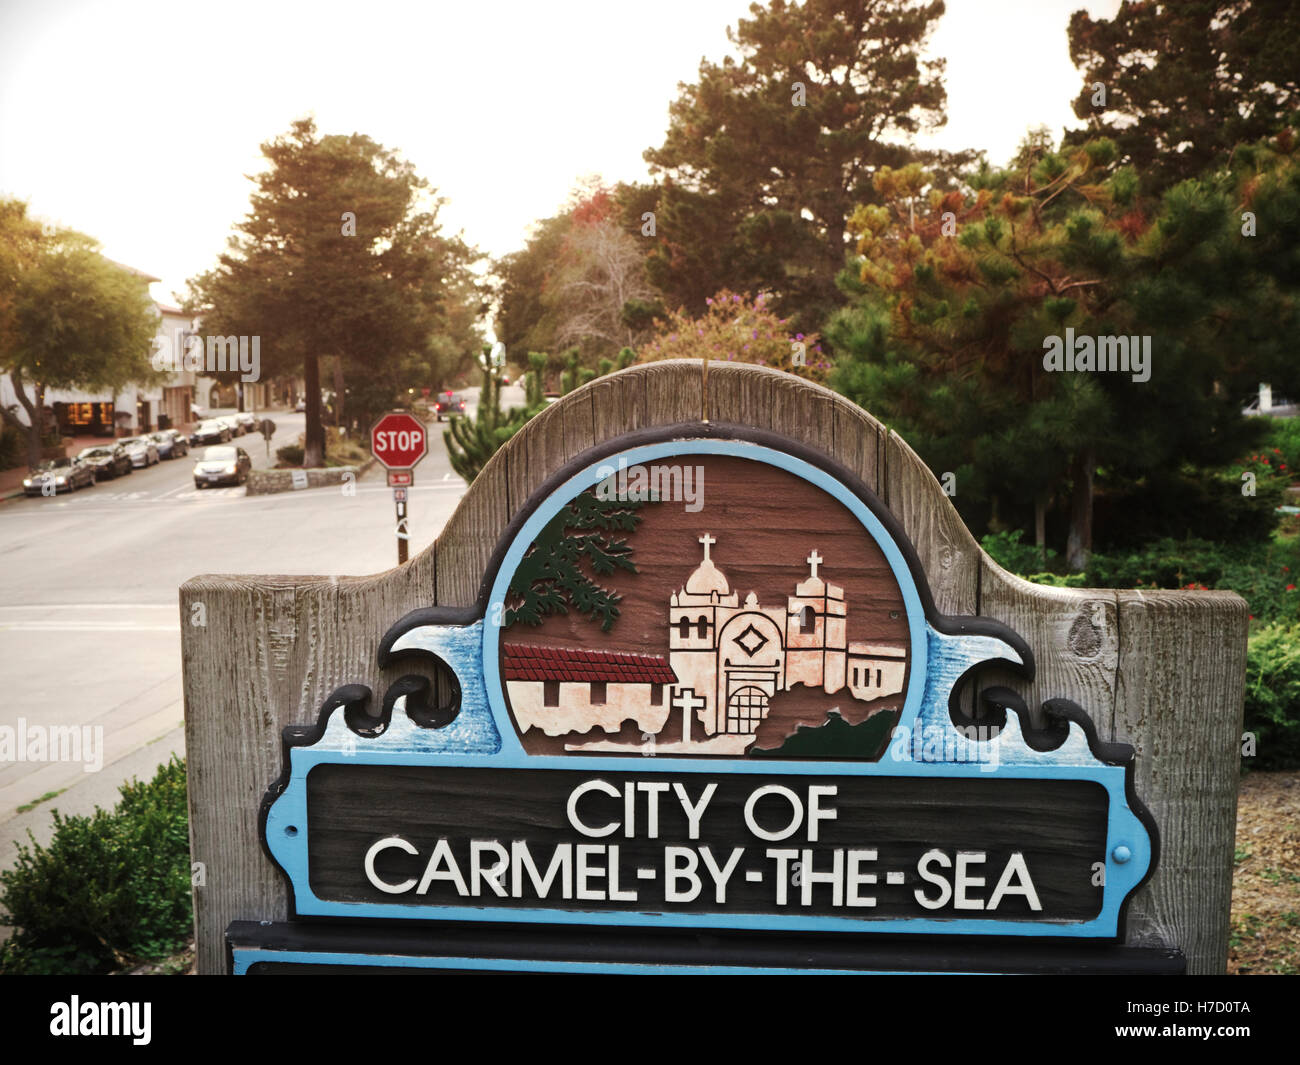 Vintage retro look on City limits sign with Carmel Mission engraving at entrance to Carmel by the sea California - Stock Image